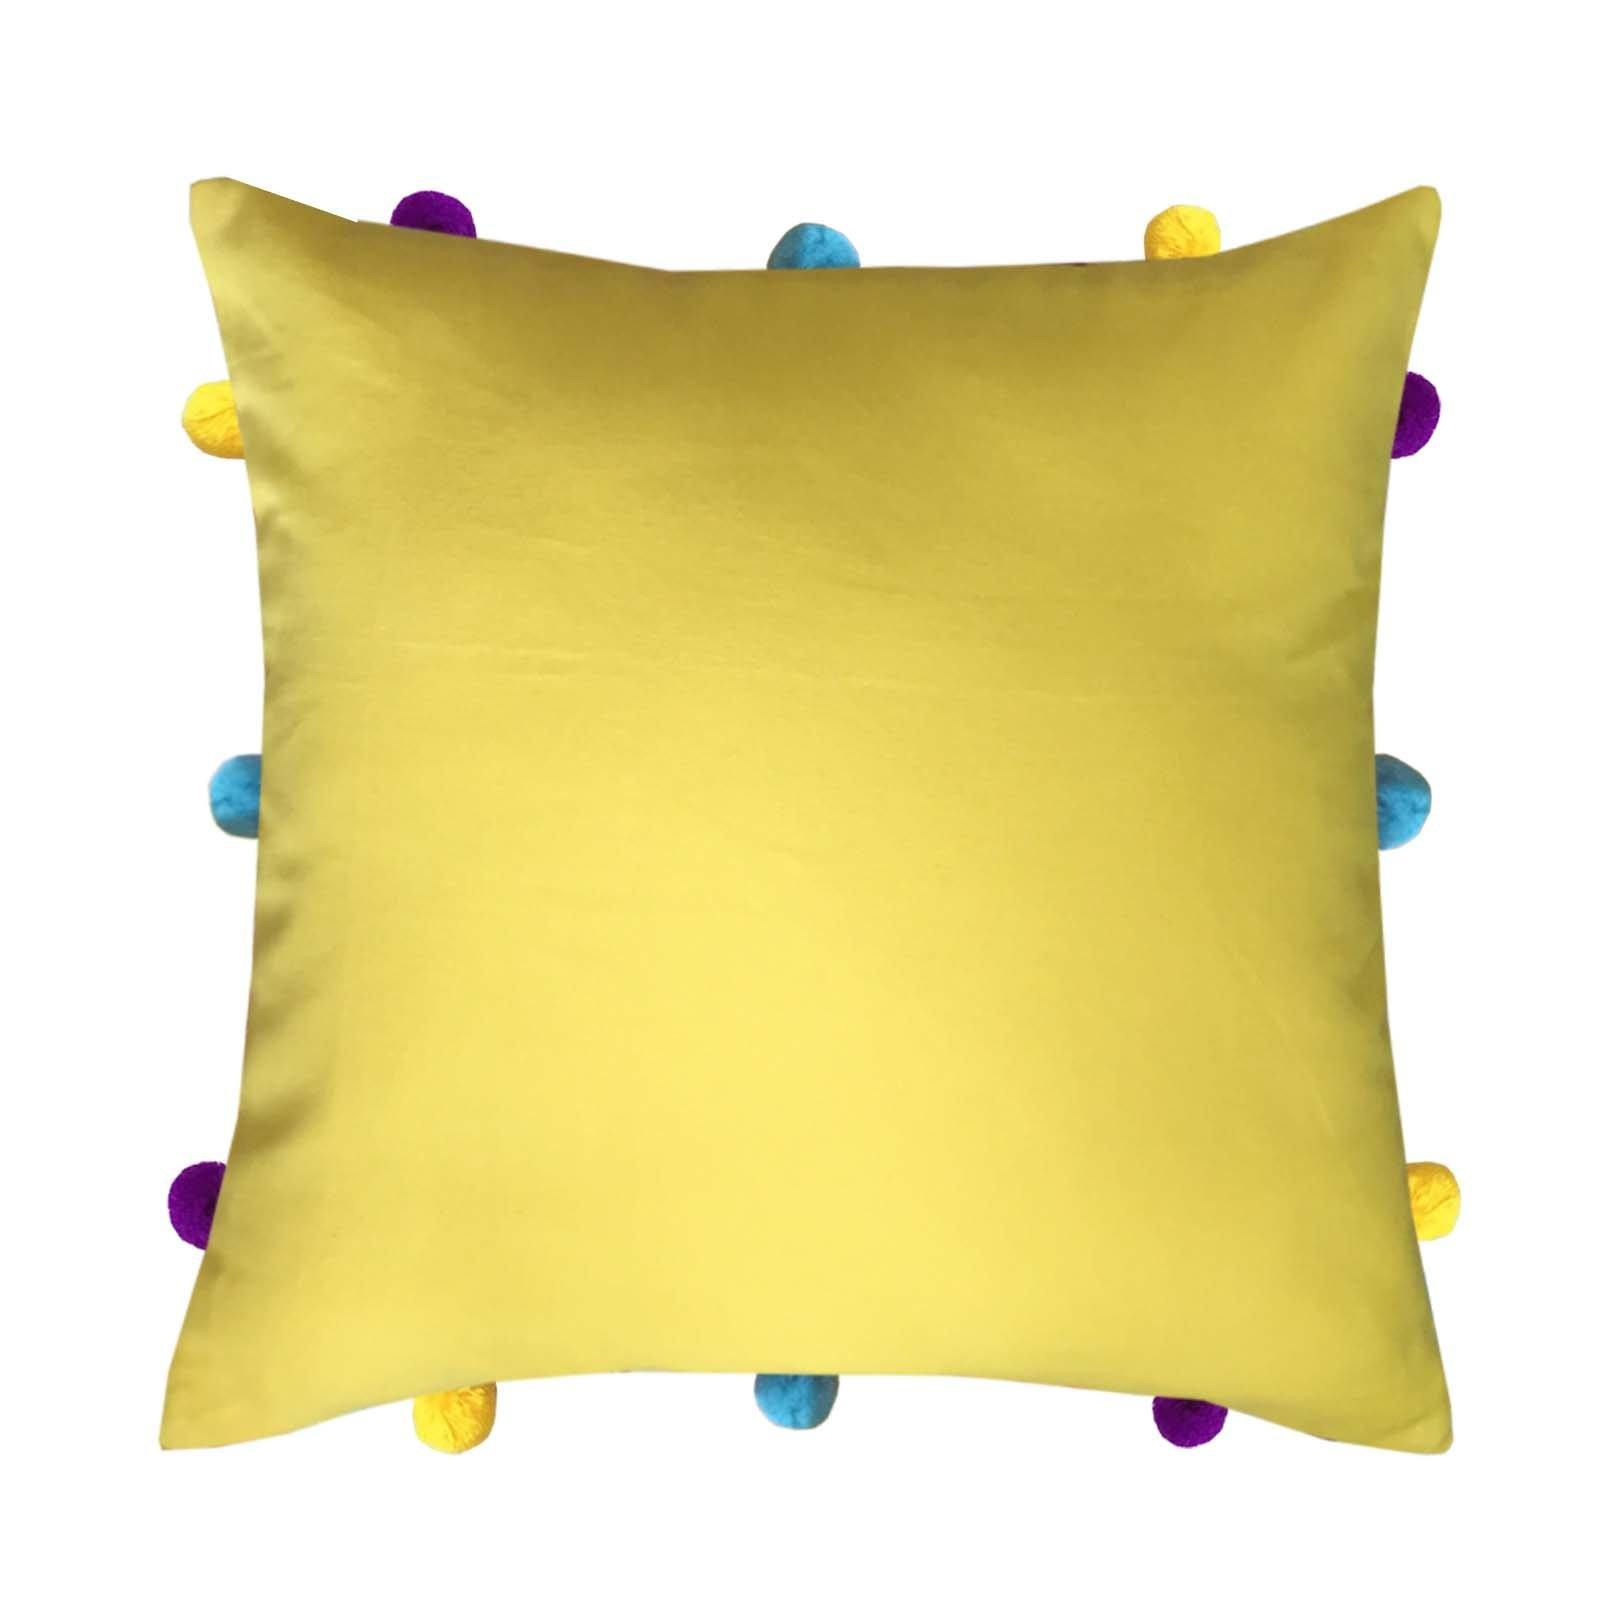 "Lushomes Lemon Chrome Cushion Cover with Colorful pom poms (Single pc, 12 x 12"") - Lushomes"